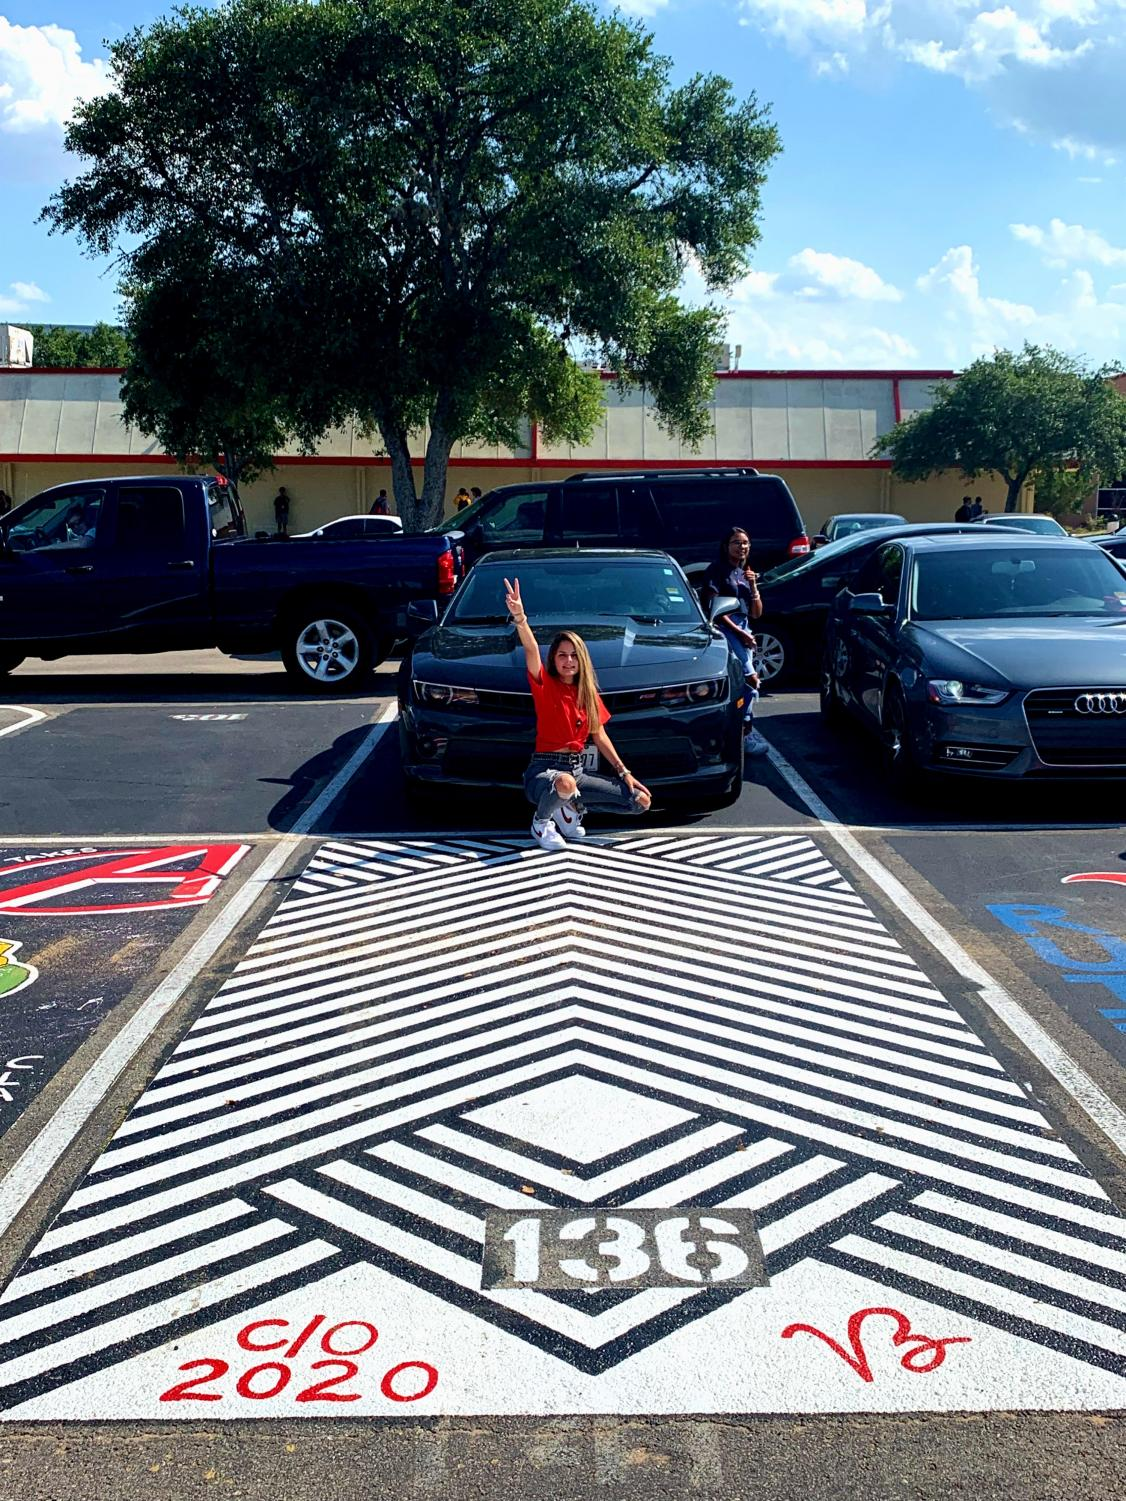 Senior Victoria Zapata shows off her artistically decorated parking spot.